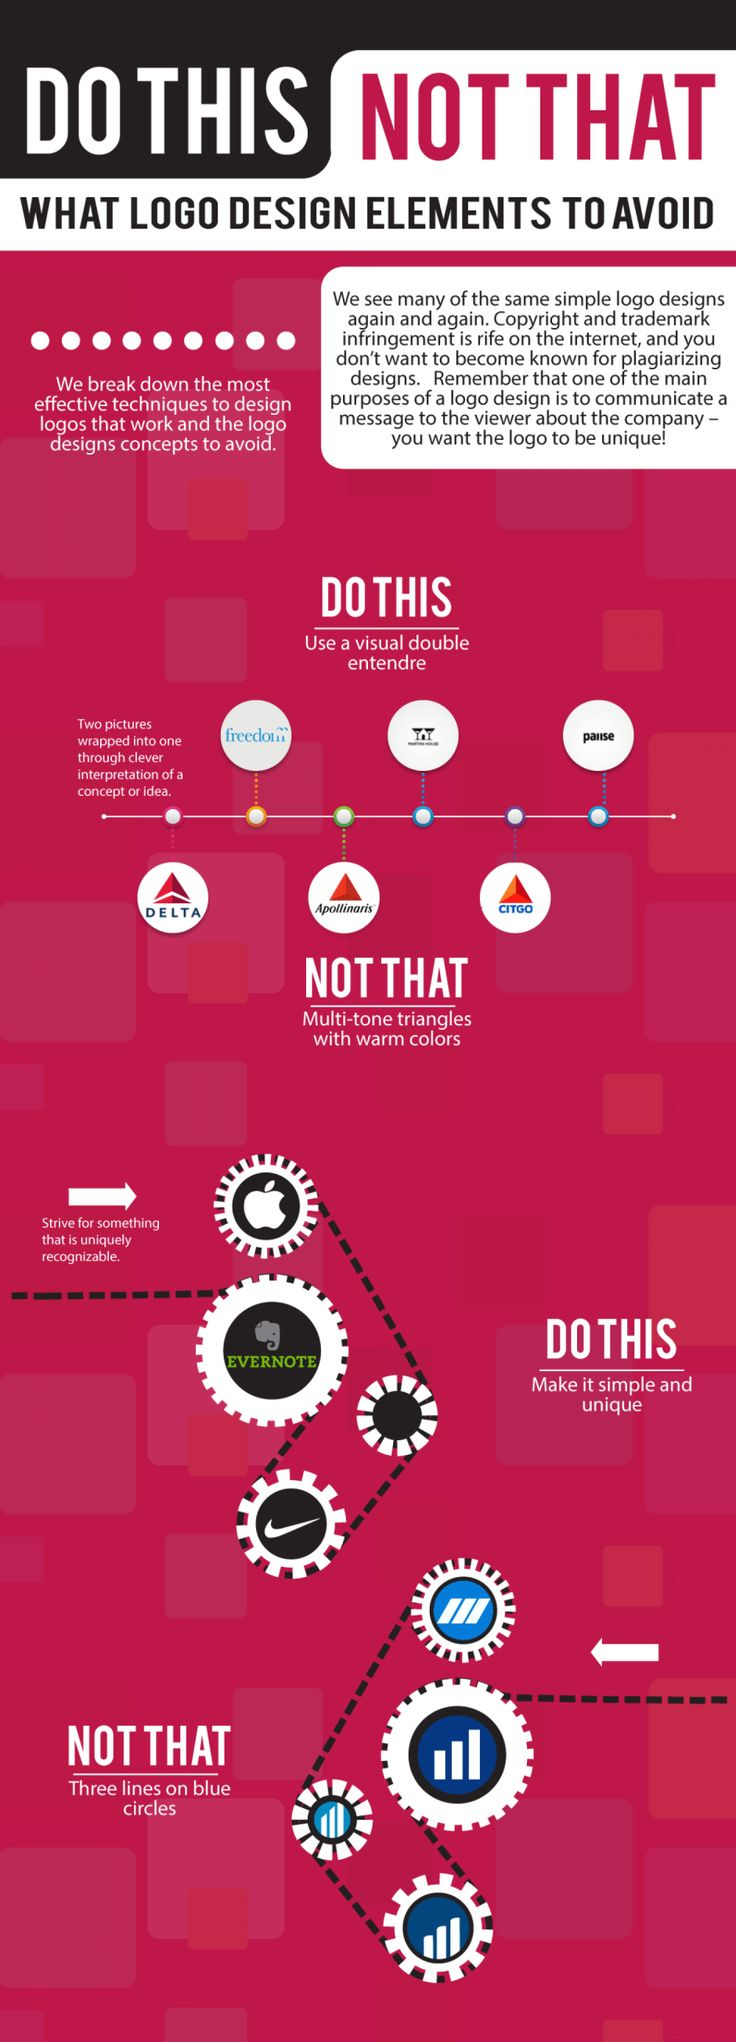 The Dos and Don'ts Of Logo Design - UltraLinx